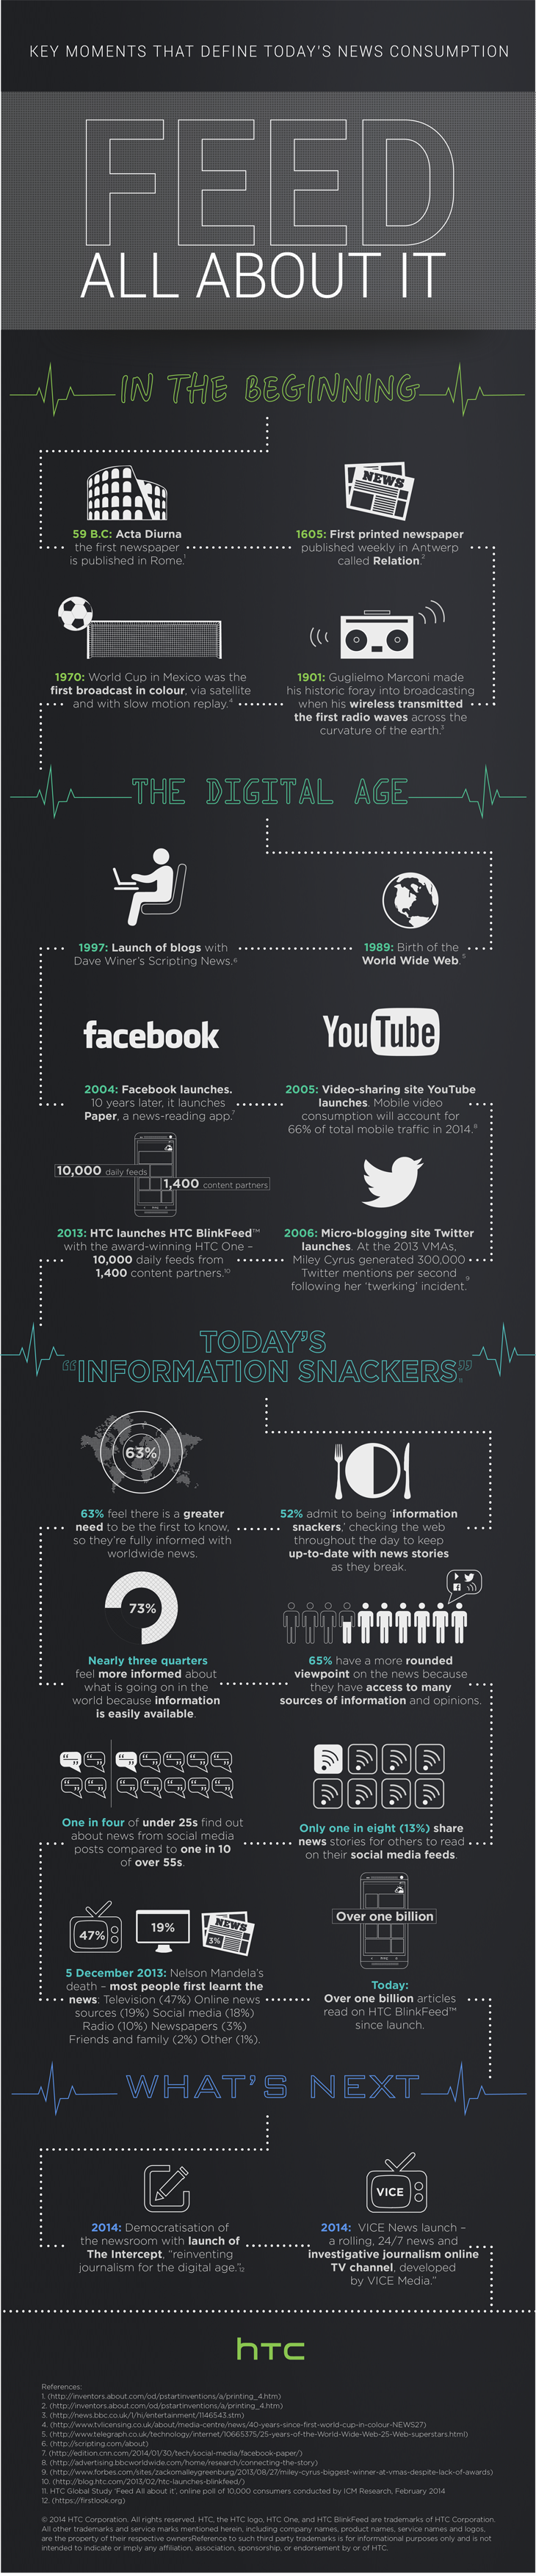 news use infographic